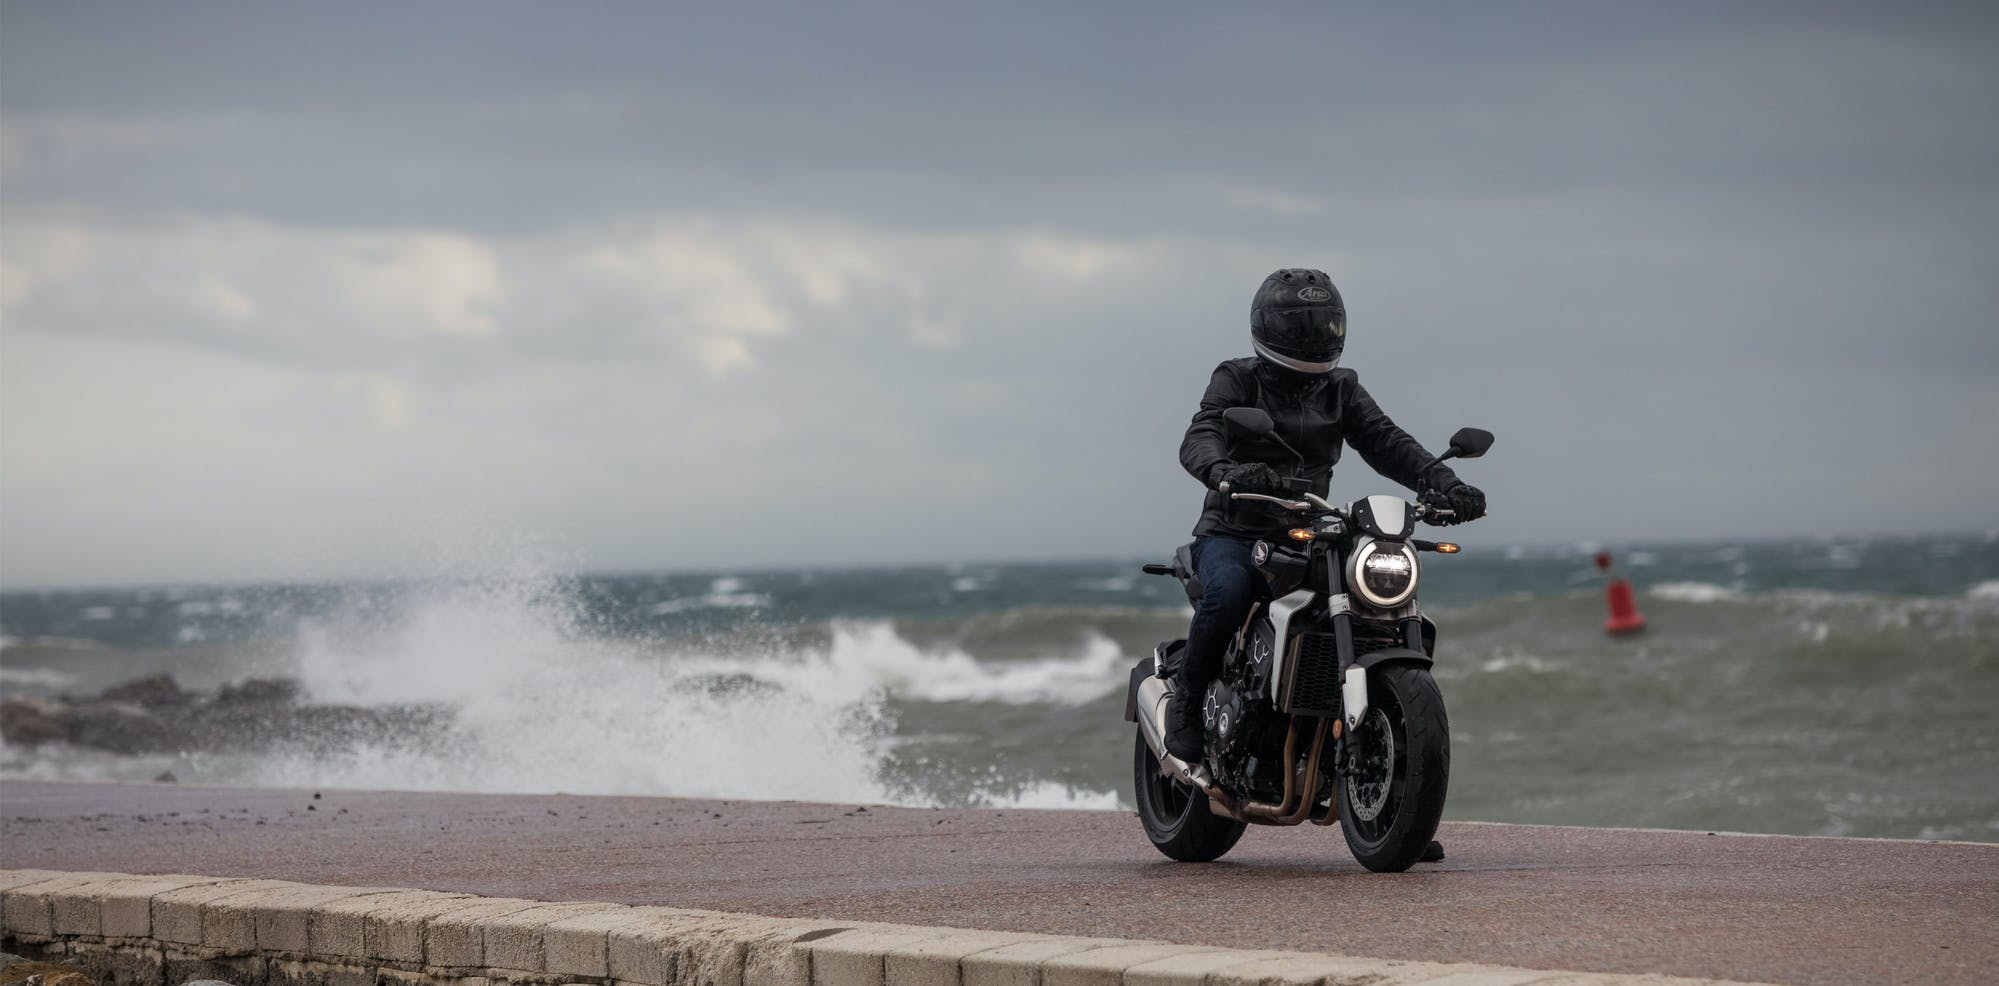 Honda CB1000R in graphite black colour, being ridden on the street road by the bay